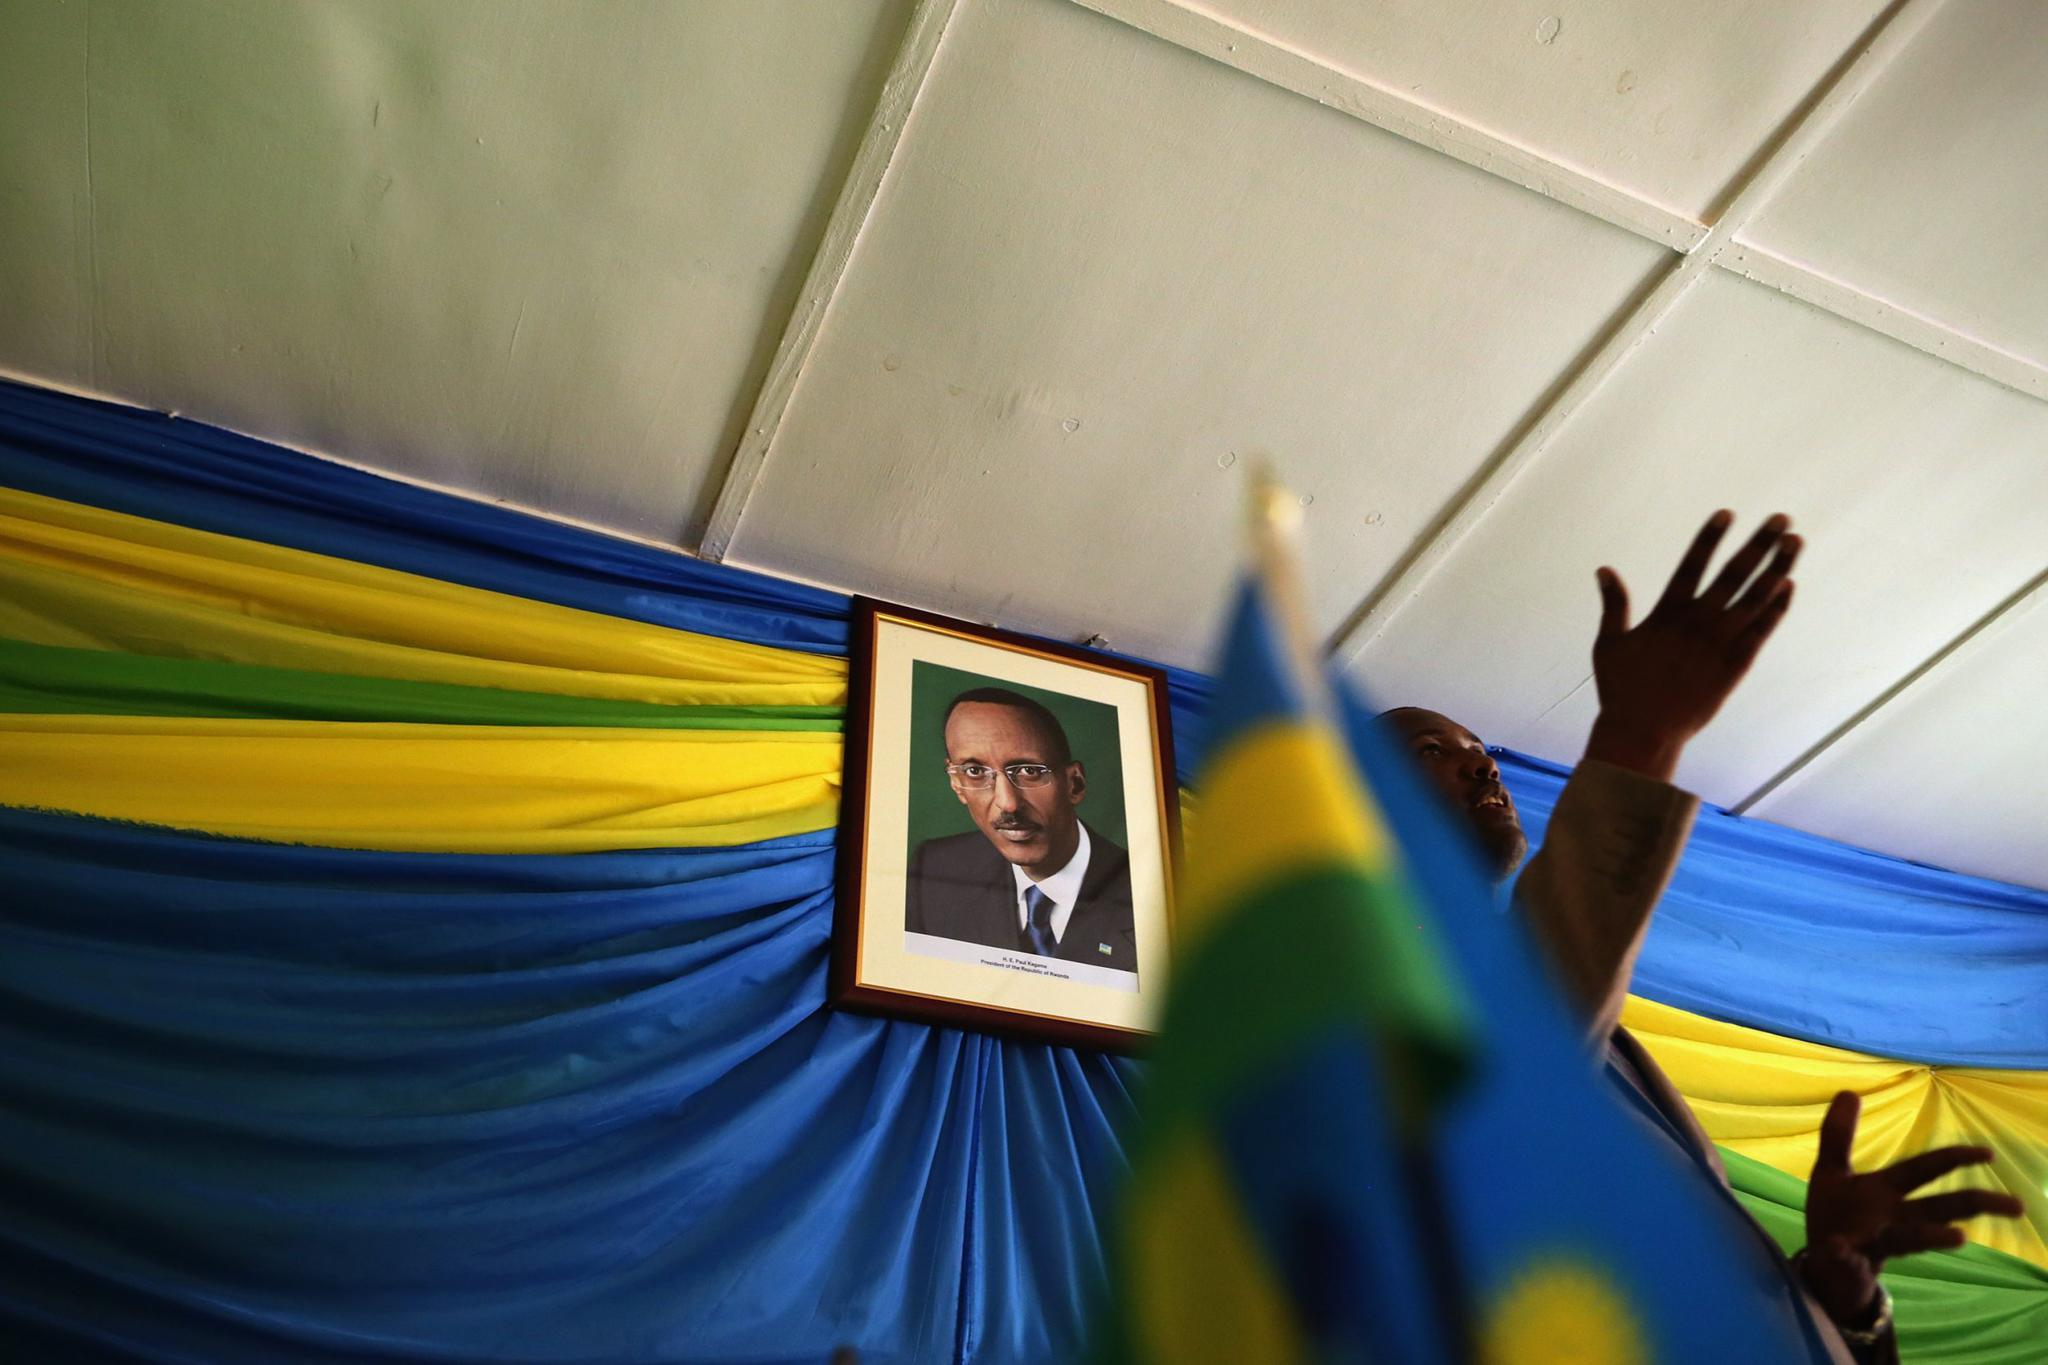 As Rwanda's president Paul Kagame—an ethnic Tutsi who has been in power since 2000—runs for another seven-year term, many Rwandans, particularly ethnic Hutus worry their country is turning into a one-party state, claiming their government that is crushing dissent ahead of the election. Following a 2015 referendum to extend term limits, Kagame can now legally remain in power until 2034.